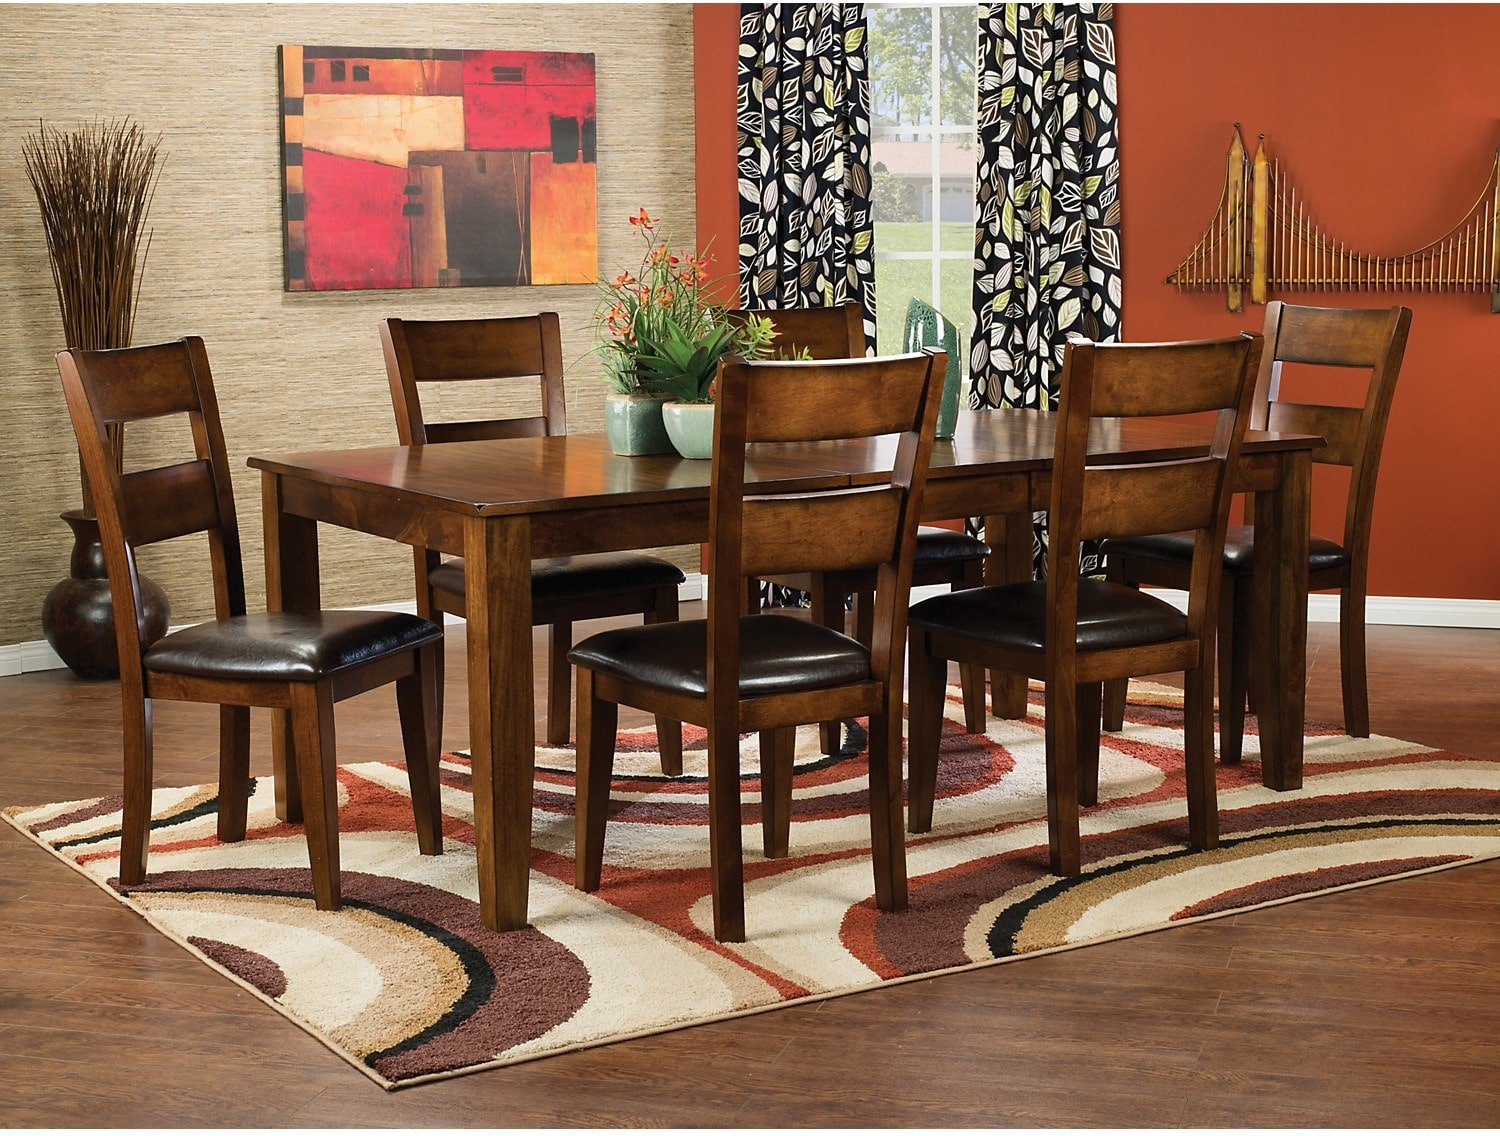 Dining Room Furniture - Dakota Light 7-Piece Dining Package